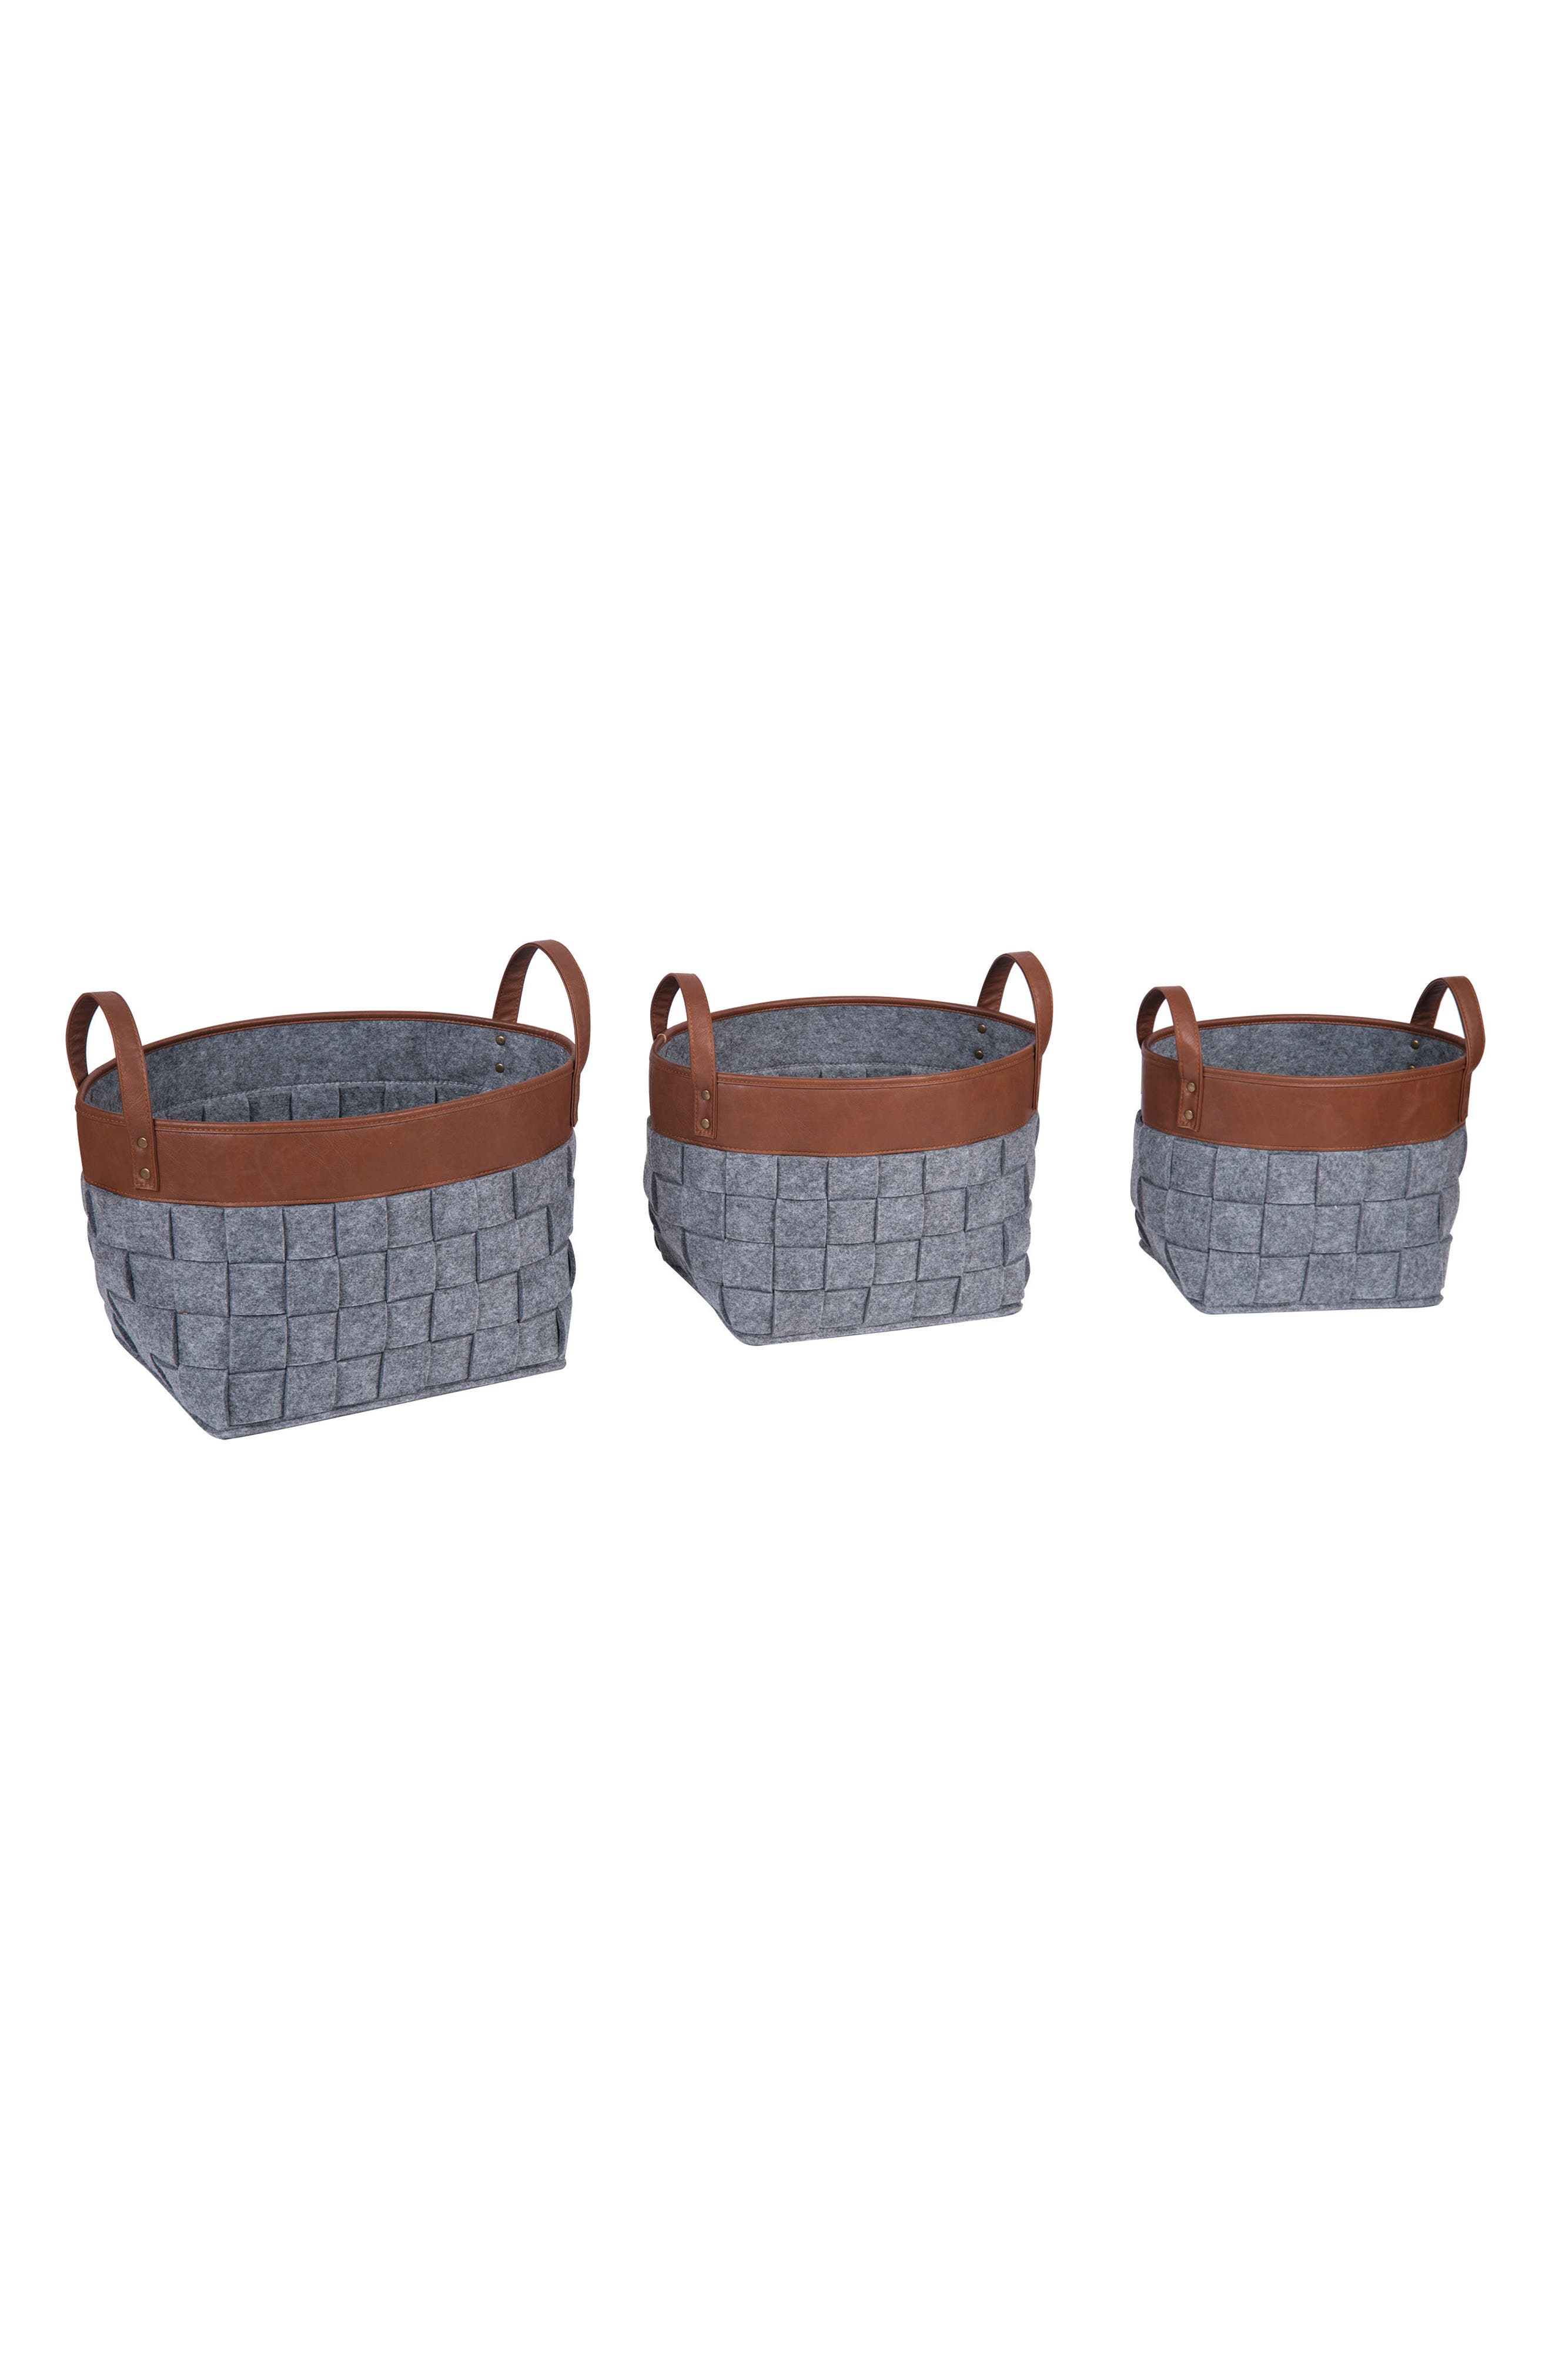 Alternate Image 1 Selected - Foreside Set of 3 Woven Nesting Baskets